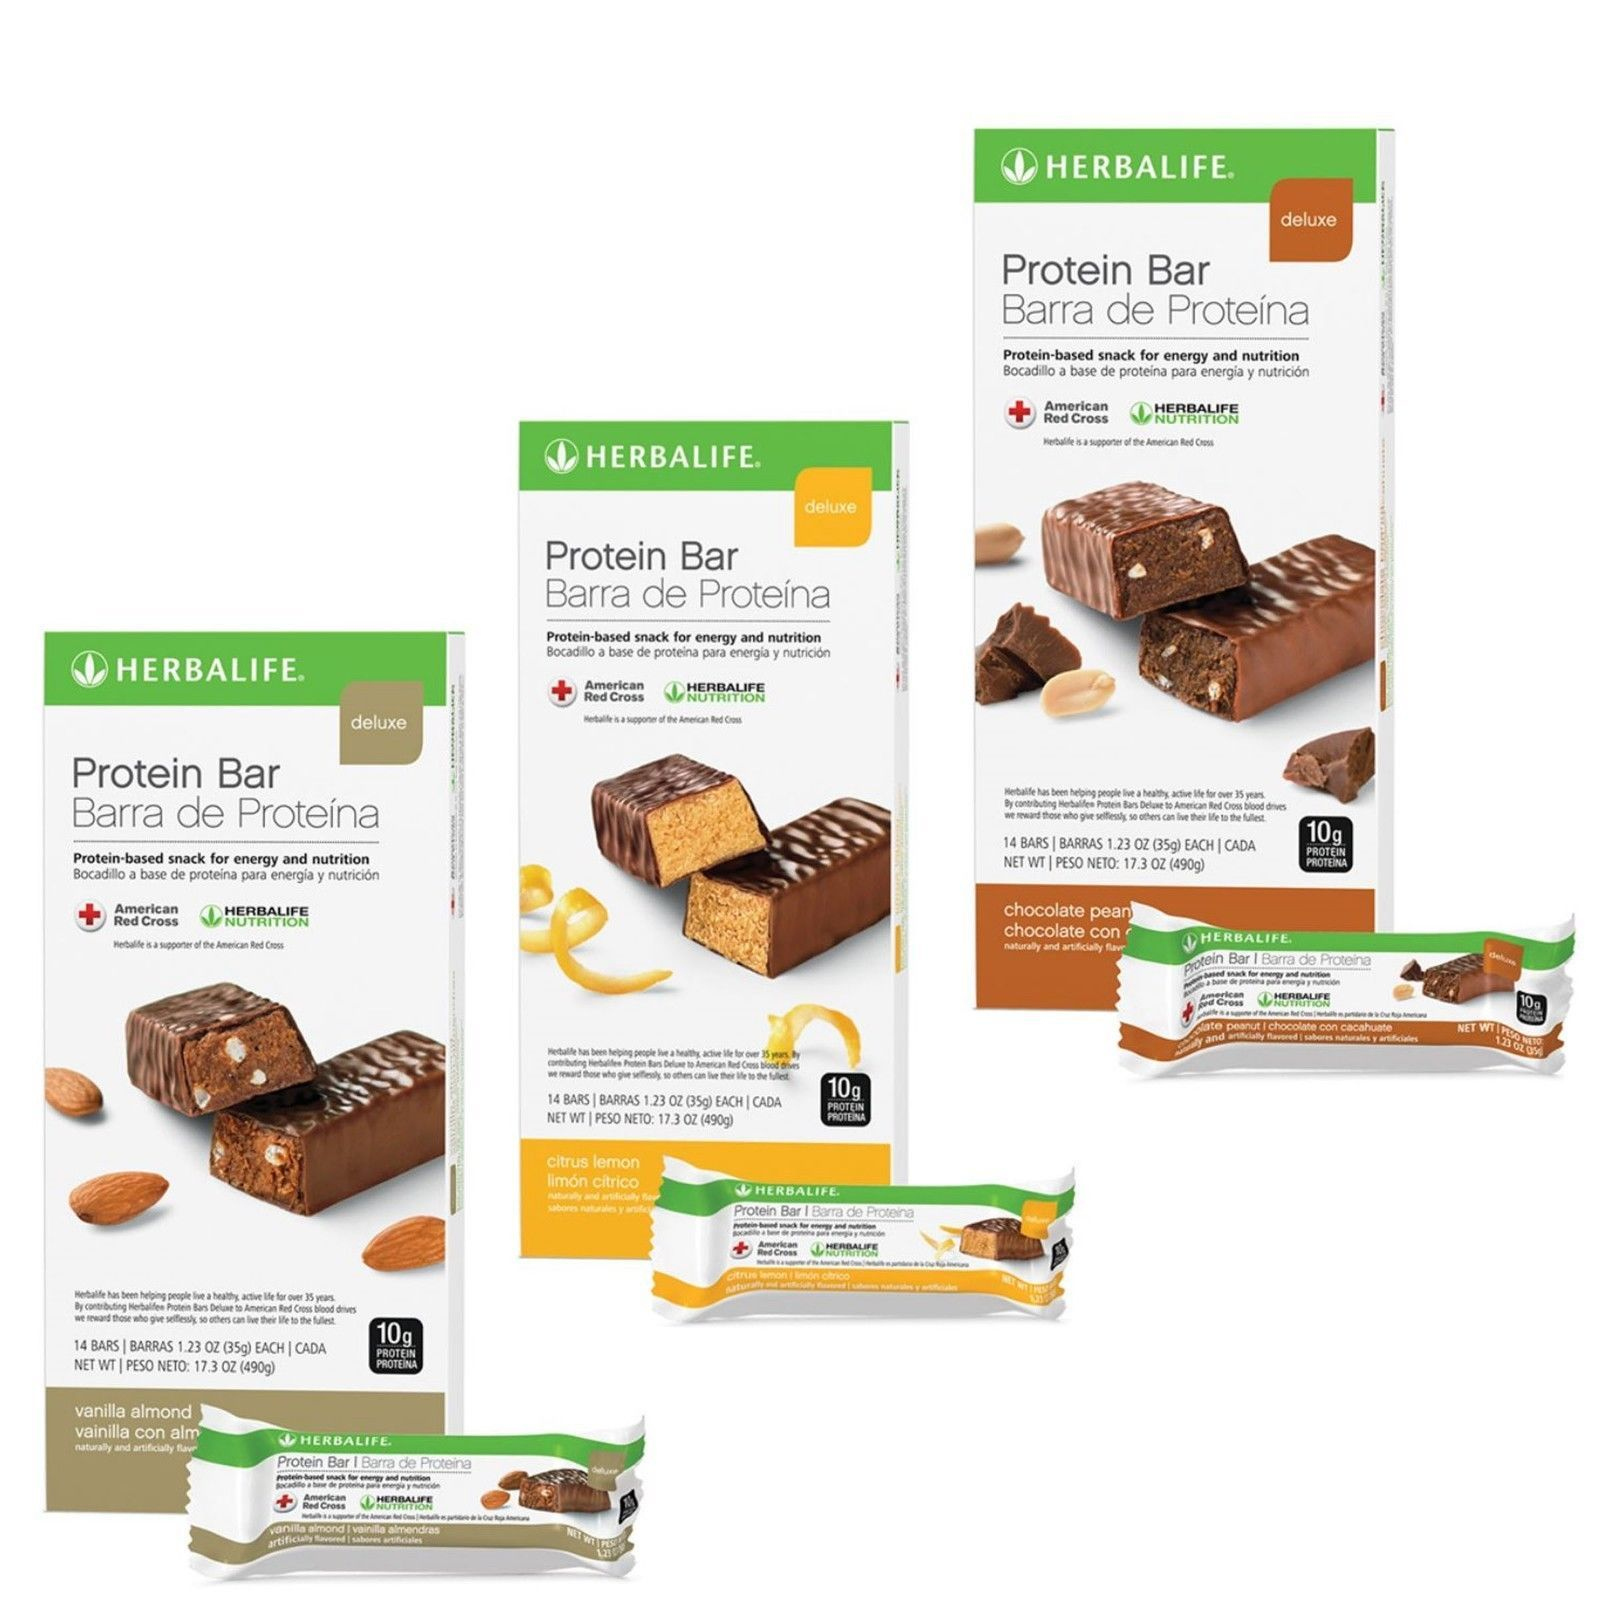 Endurance And Energy Bars Drinks And Pills 1278 Herbalife Protein Bar Deluxe Chocolate Peanut Lemon Vanilla 14 Protein Bars Herbalife Protein Bars Homemade